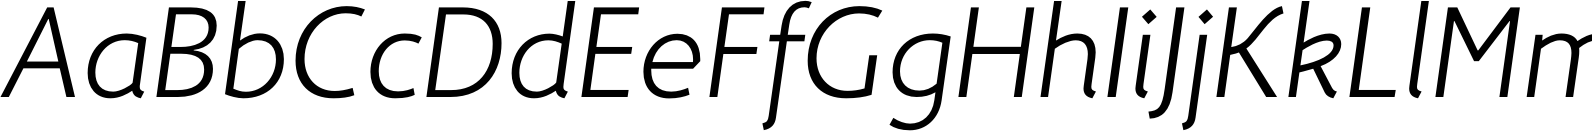 Fox Sans TRF Light Italic